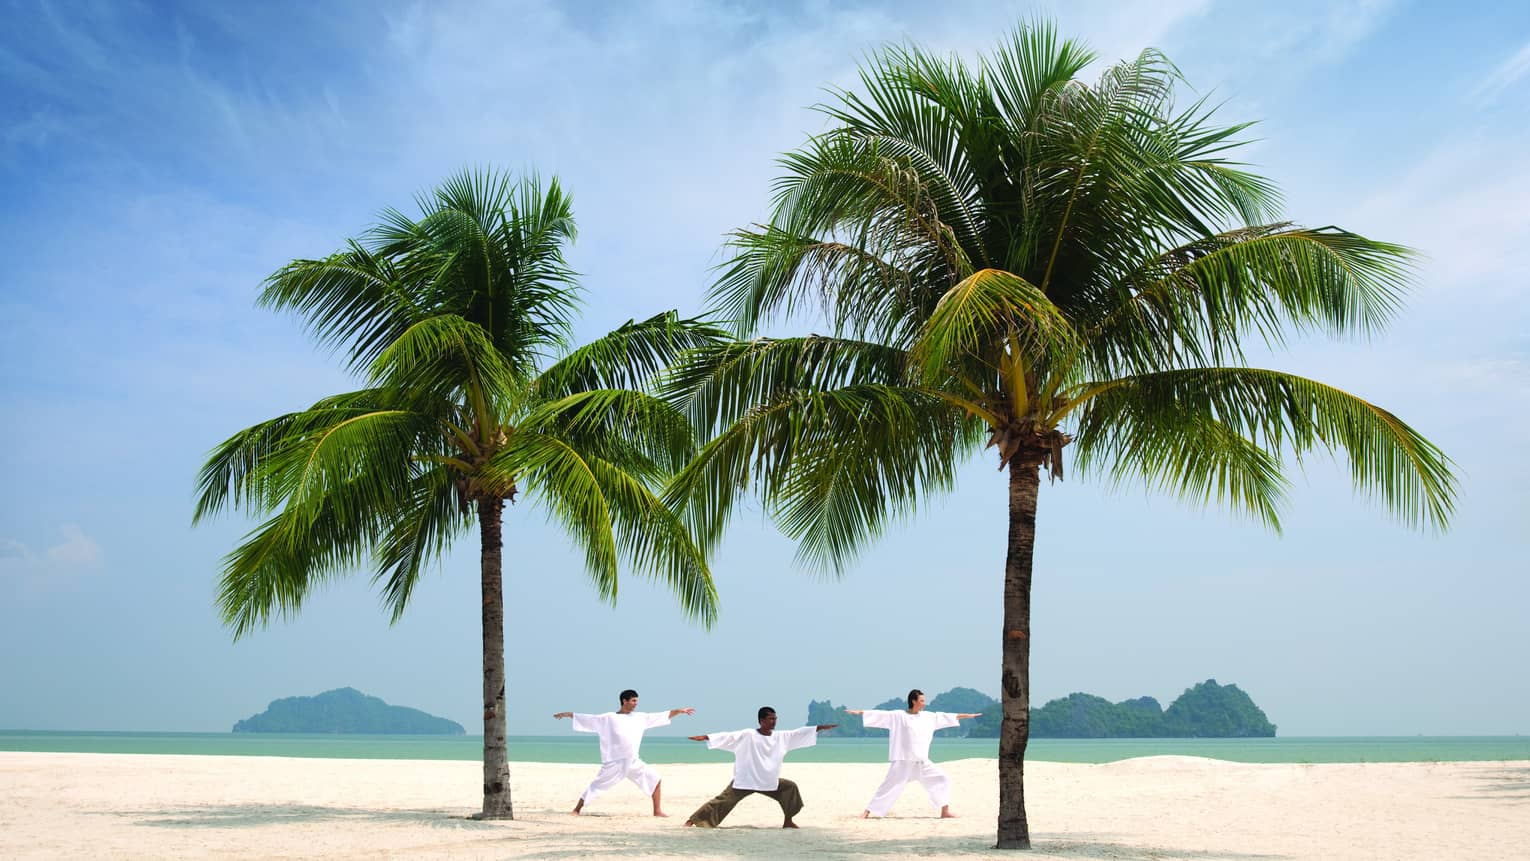 Three people stretch, balance in yoga poses between two large palms on beach